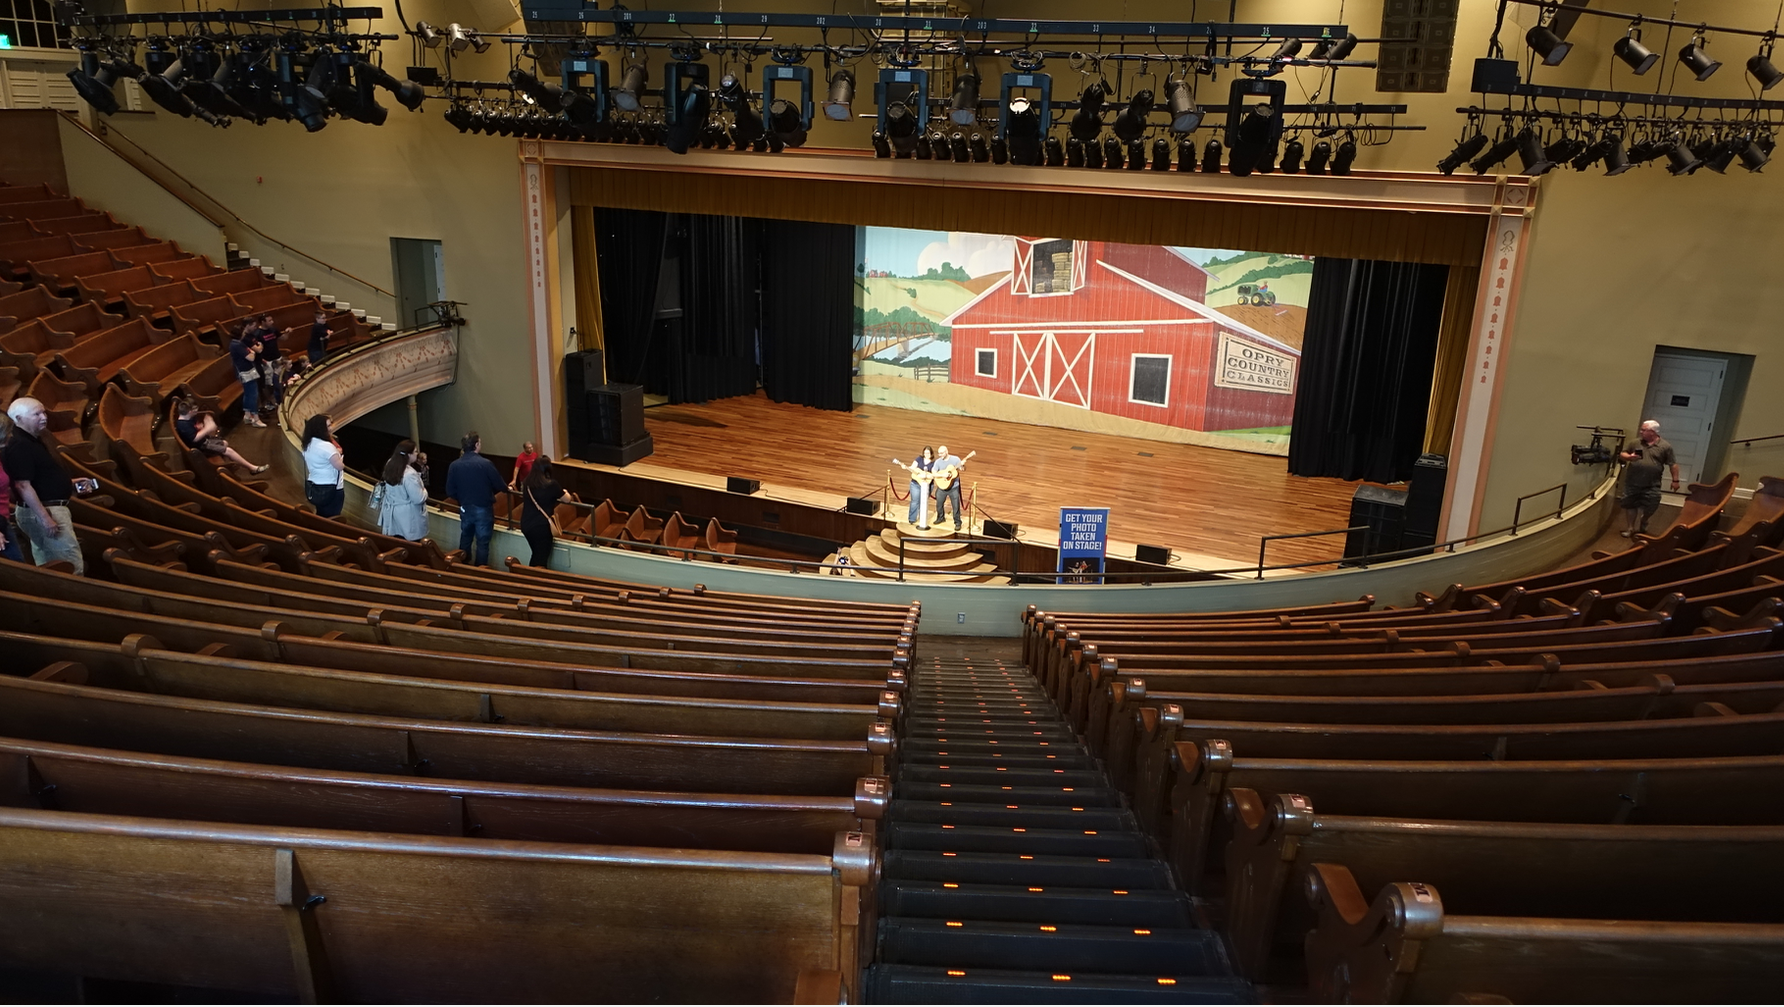 Ryman tours allow you to explore the building which is home to many artifacts, displays and photo ops.